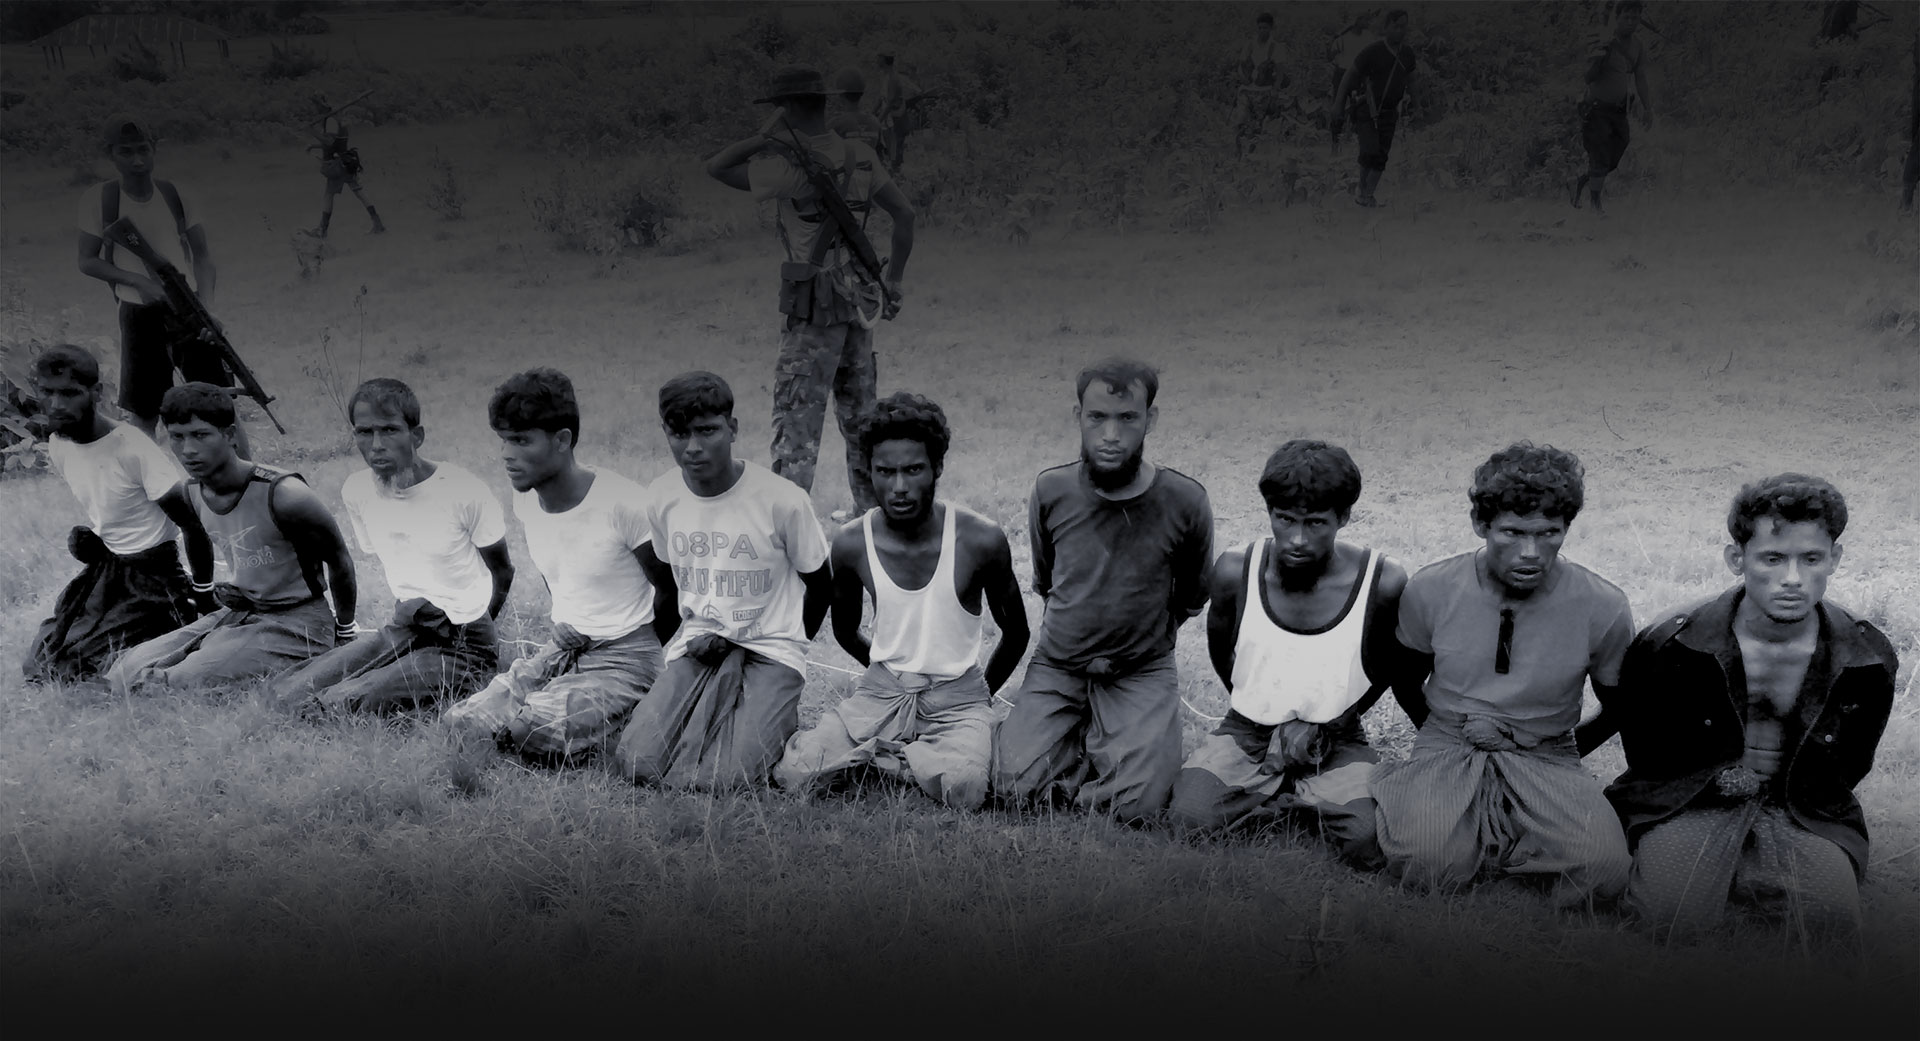 """Reuters reported, """"This photo was taken on the day the 10 Rohingya men were killed. Paramilitary police officer Aung Min, left, stands guard behind them. The picture was obtained from a Buddhist village elder, and authenticated by witnesses."""""""